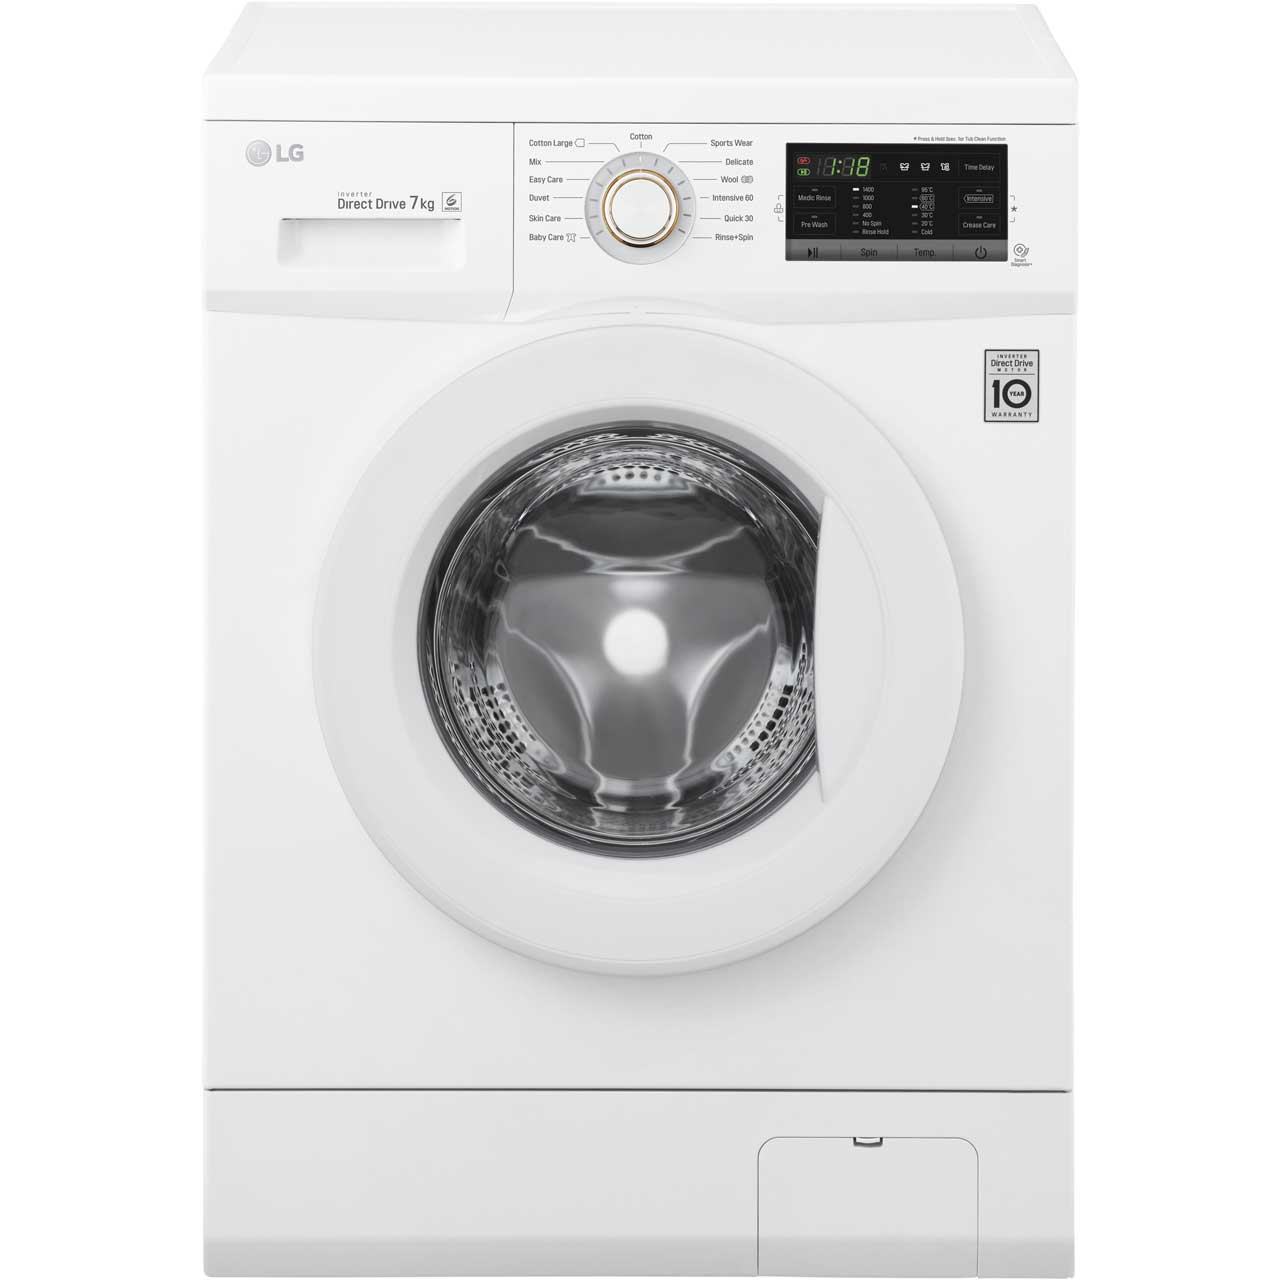 LG FH4G7QDN0 Free Standing Washing Machine in White